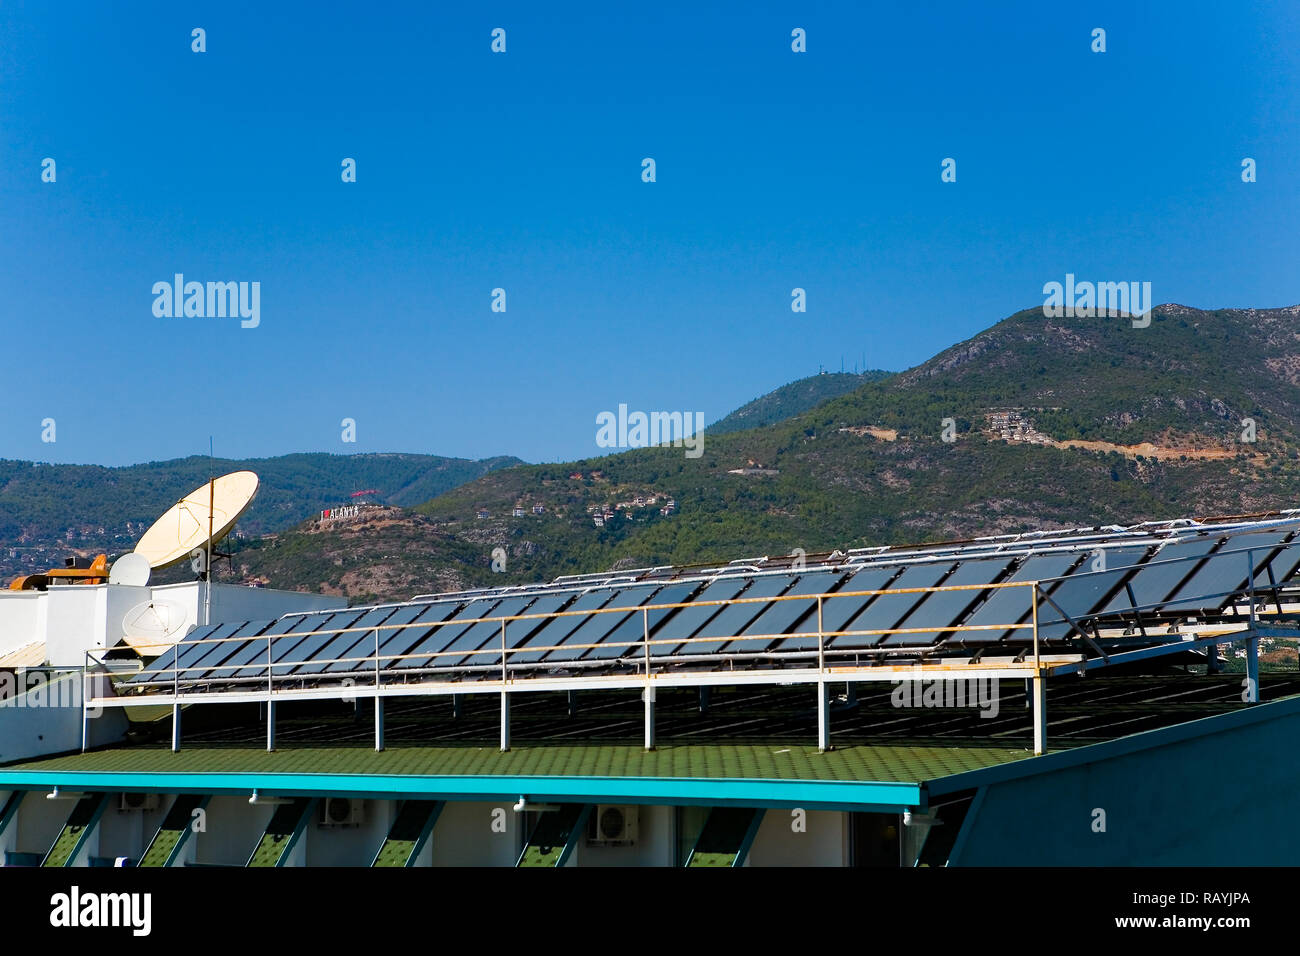 Solar panels on the roof of the building. Alanya. - Stock Image